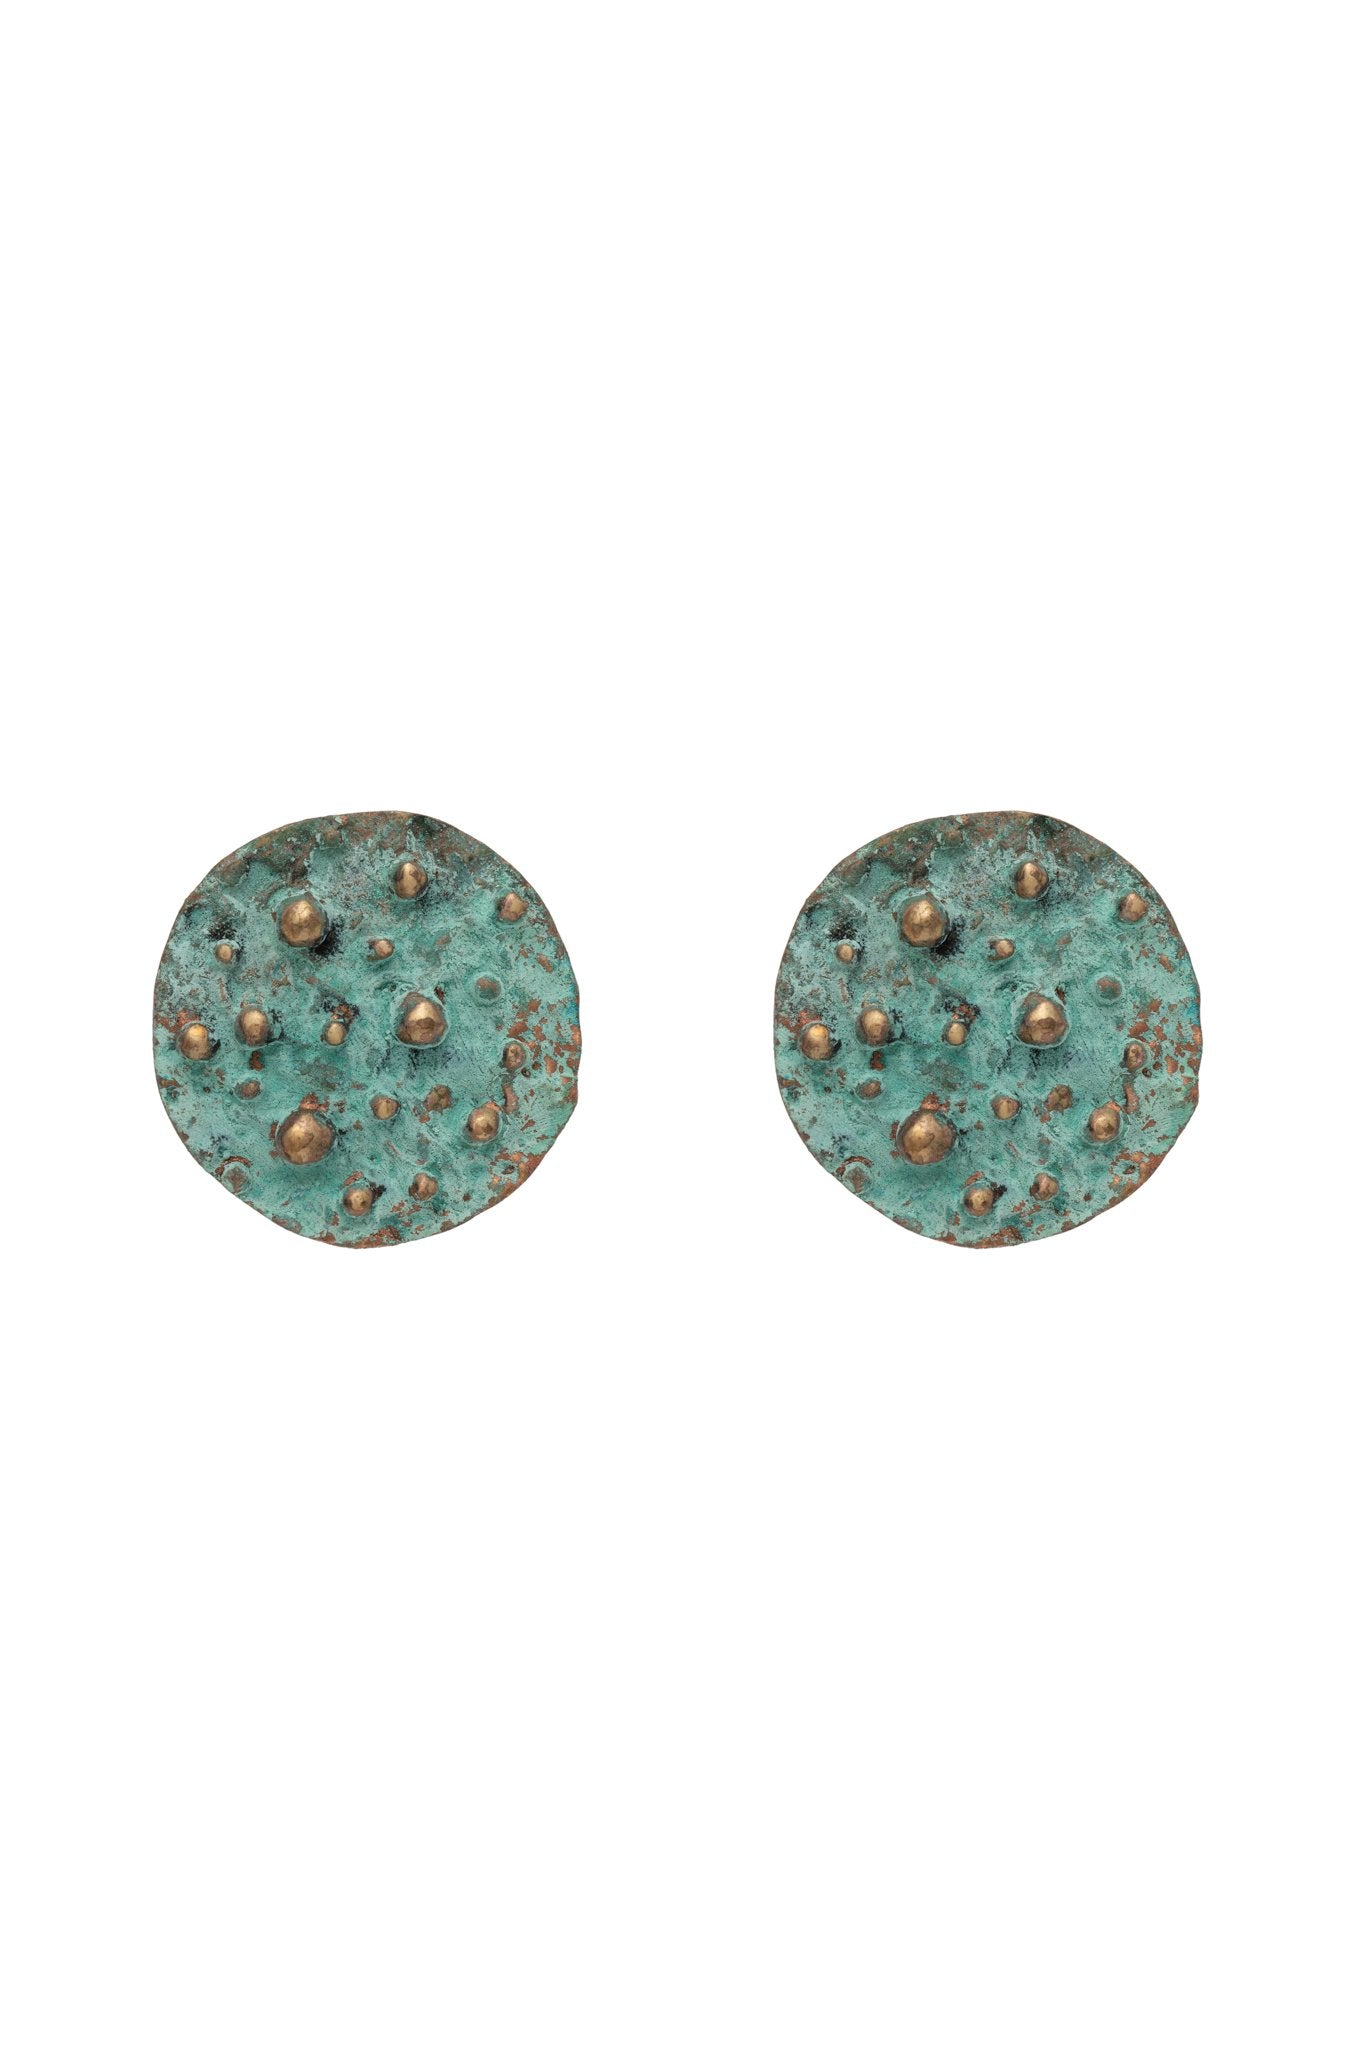 GREEN PATINA COIN EARRINGS